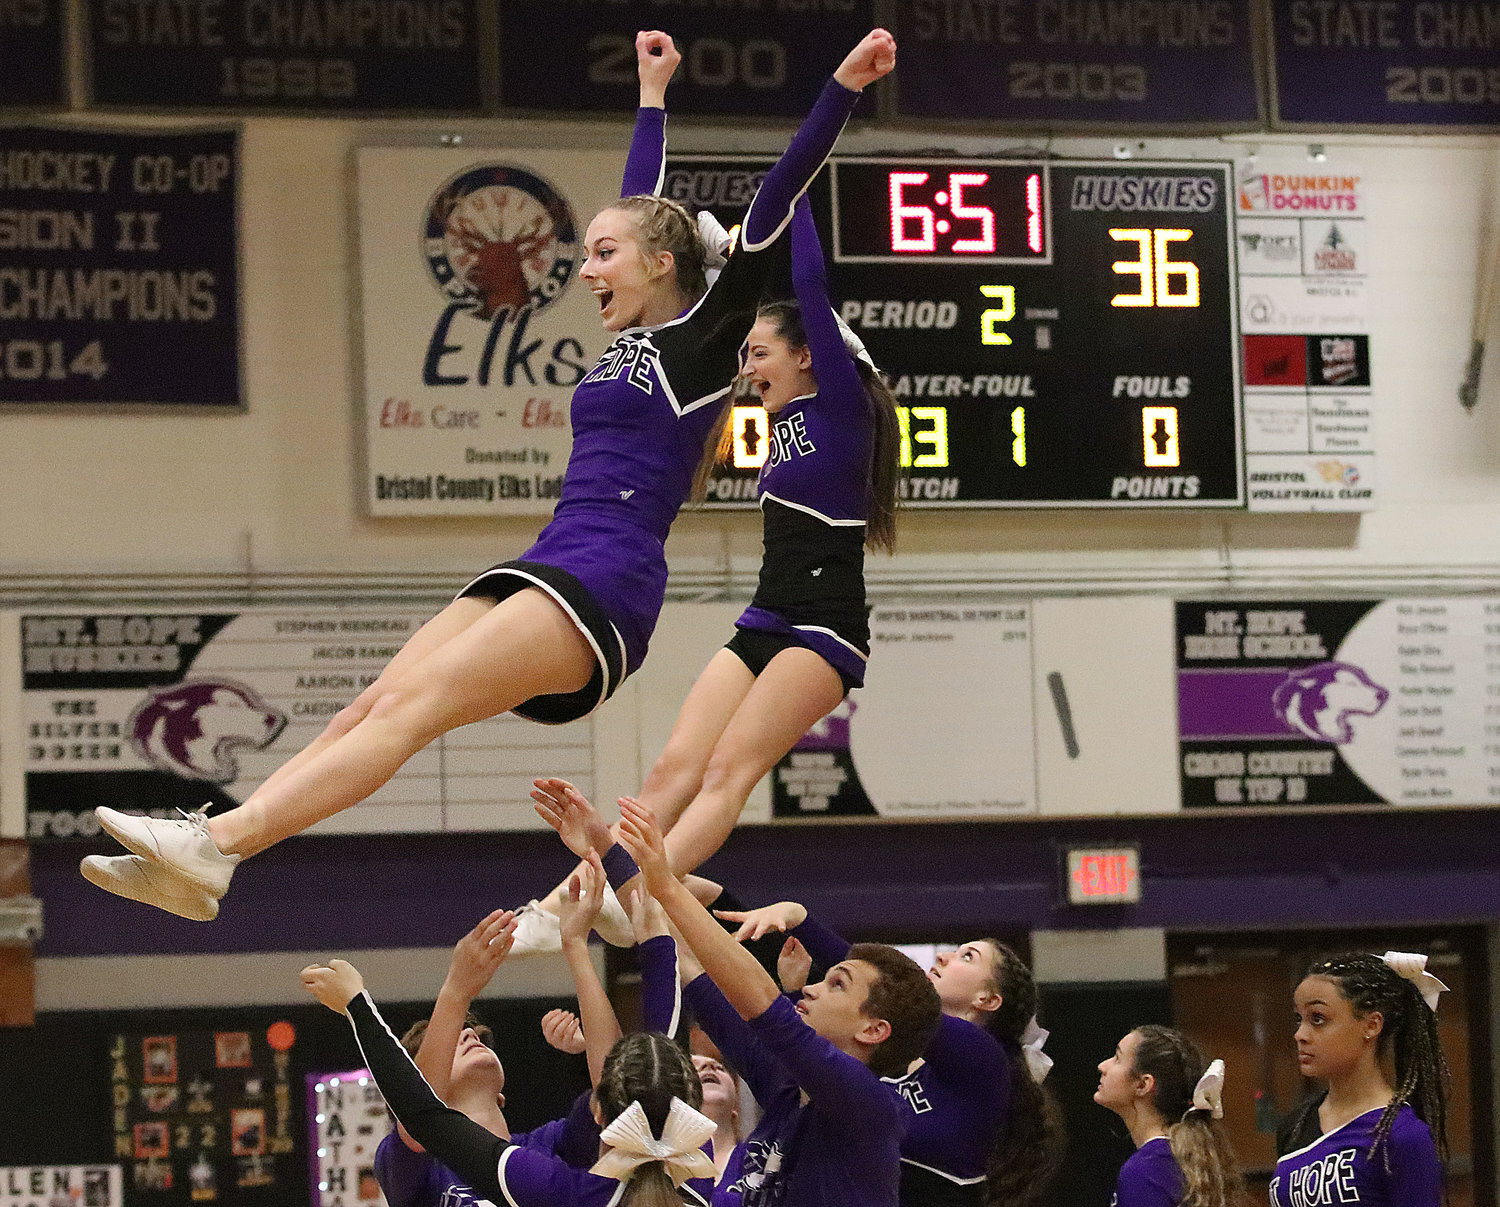 Huskies cheerleaders Angel Bzdula (left) and Rachael Ward are hoisted into the air during their halftime show.